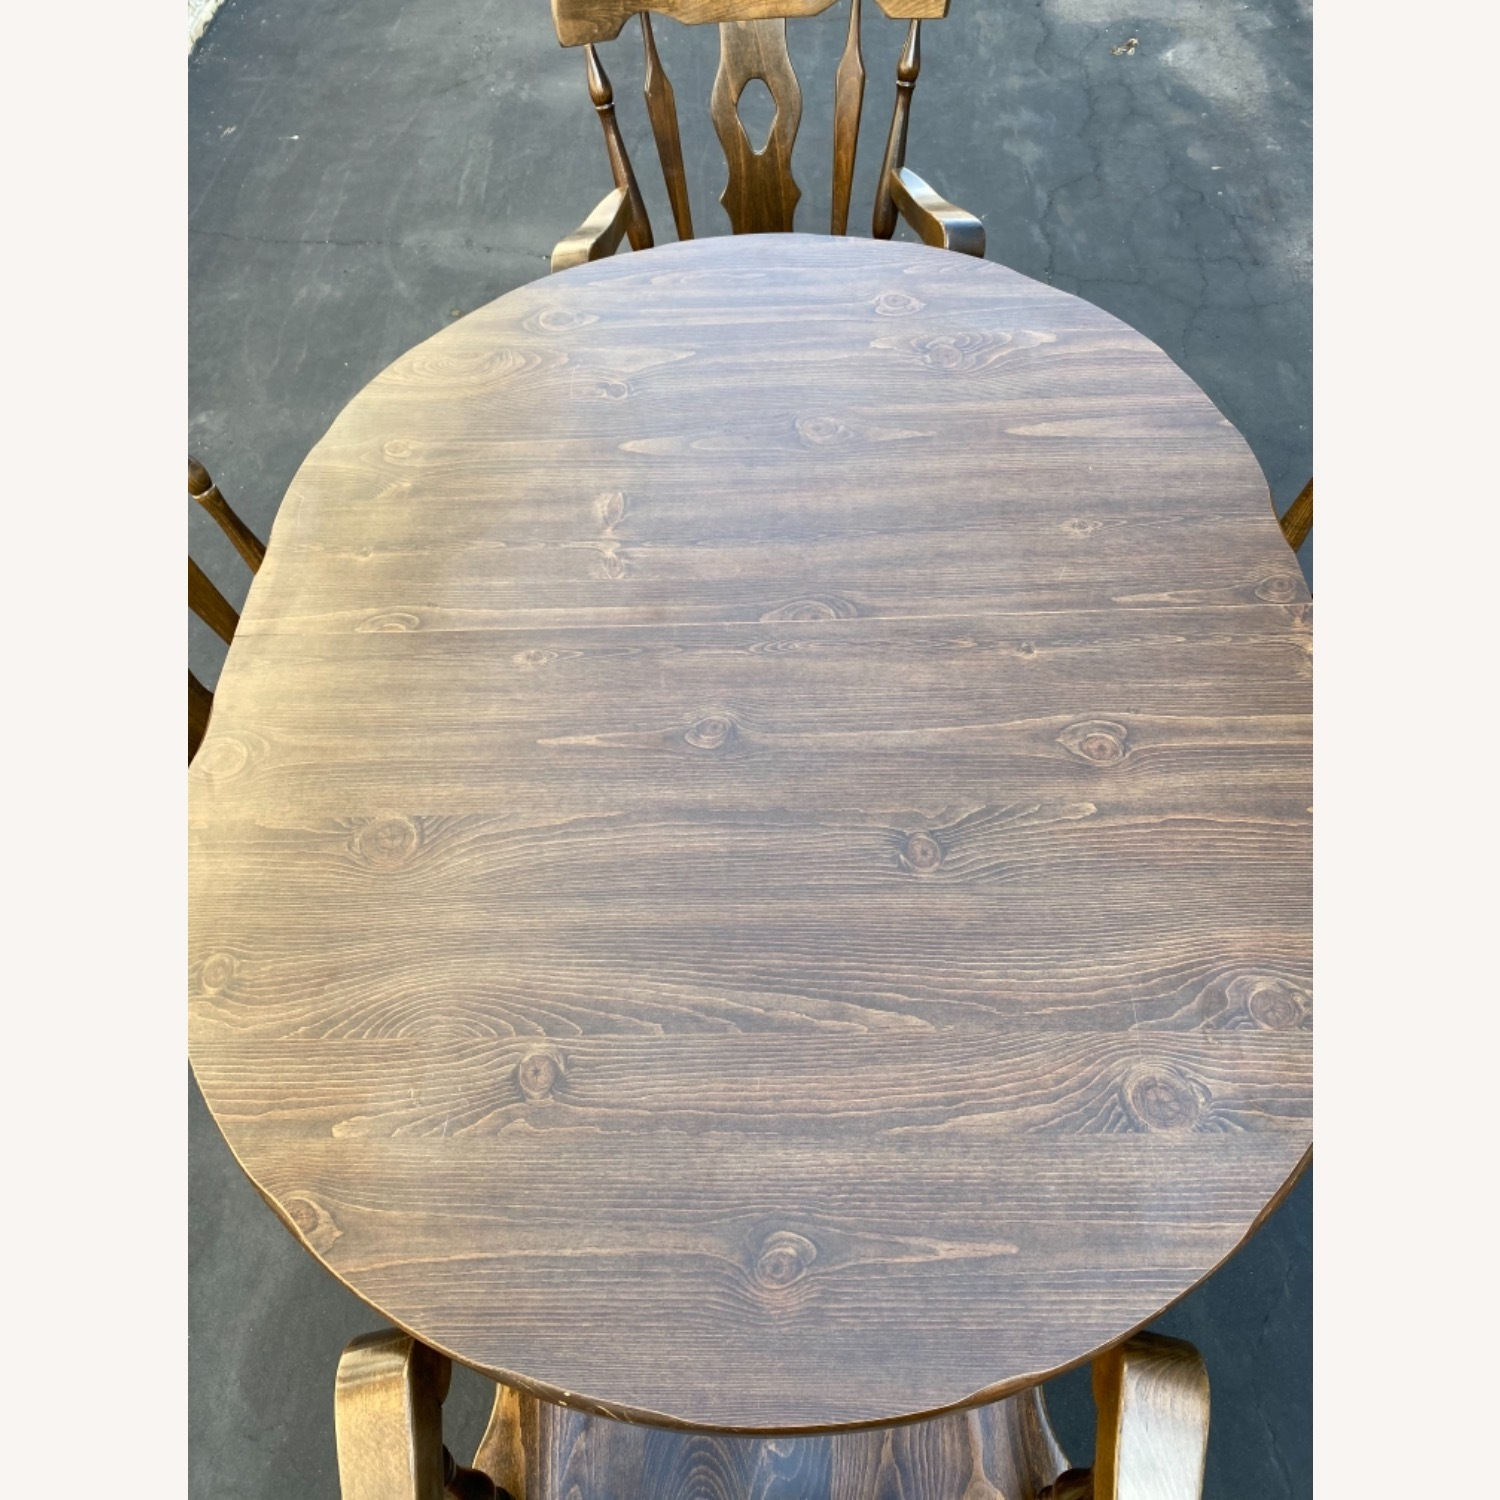 Solid Wood Dining Table with 4 Chairs - image-4